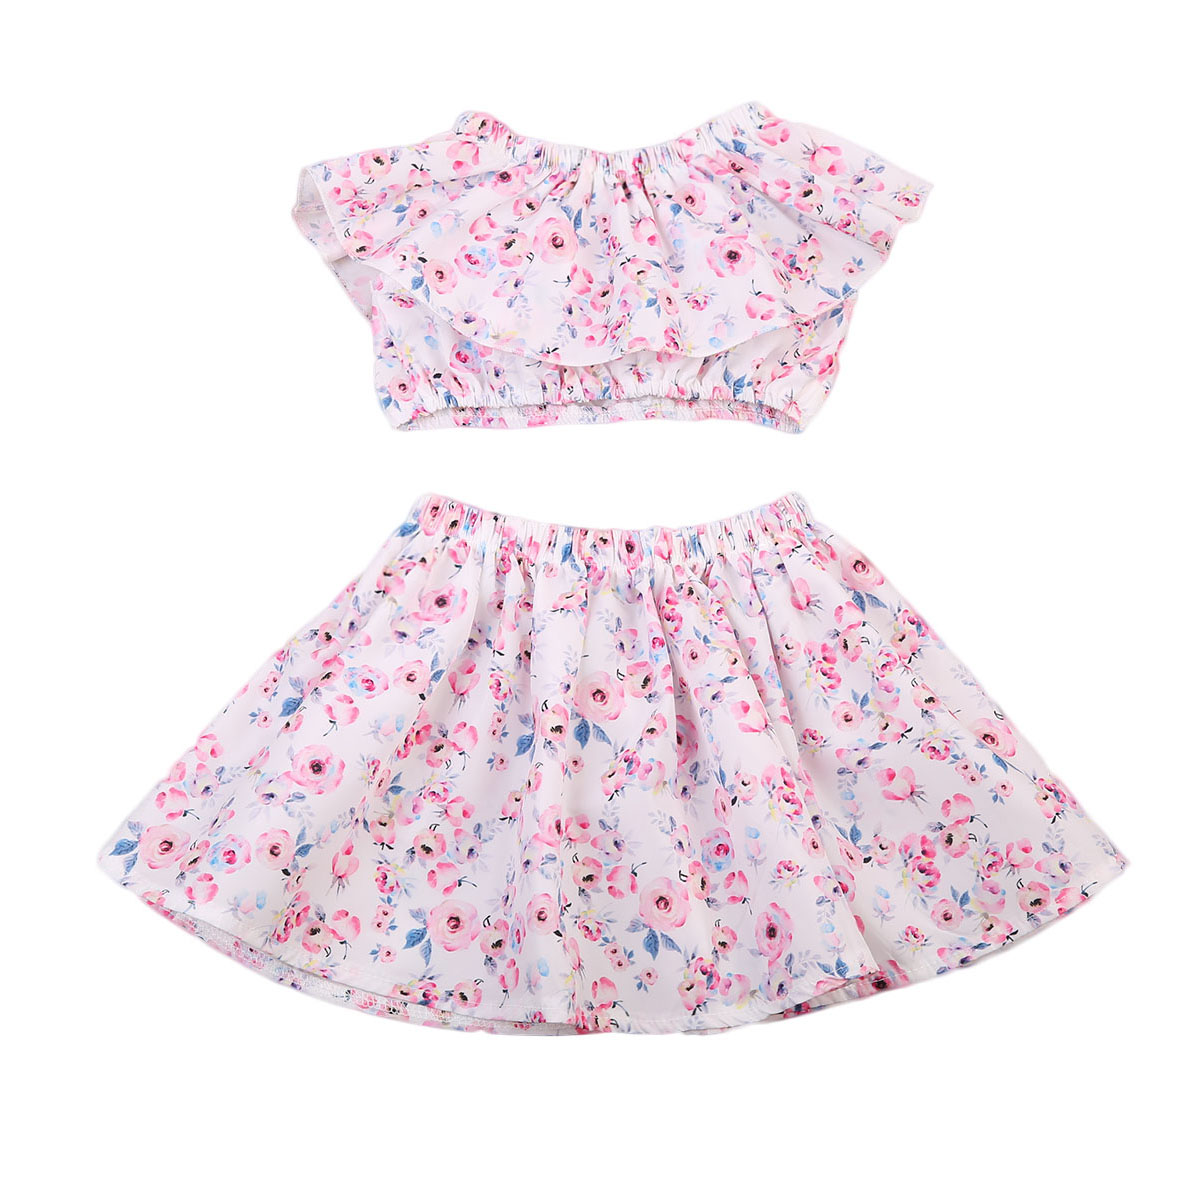 2PCS Newborn Infant Baby Girls Clothes Summer Baby Girl Floral Tops Skirt Dress Outfits Set 2017 New 0-24M